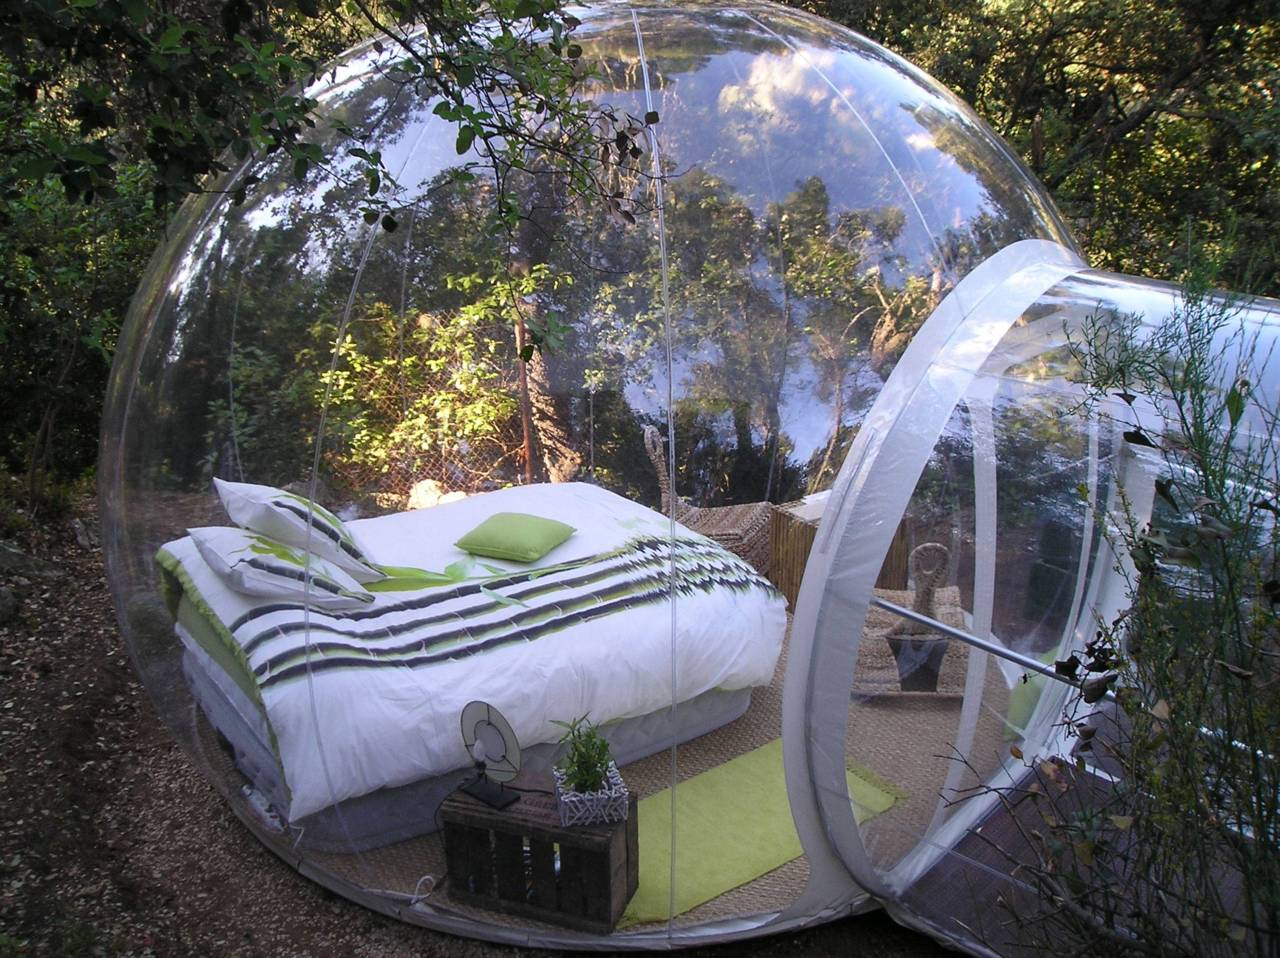 And speaking of glass encased bedrooms  here s another one  This one was  designed in a transparent bubble surrounded by nature and vegetation. 25 Cool Bedroom Designs To Dream About At Night